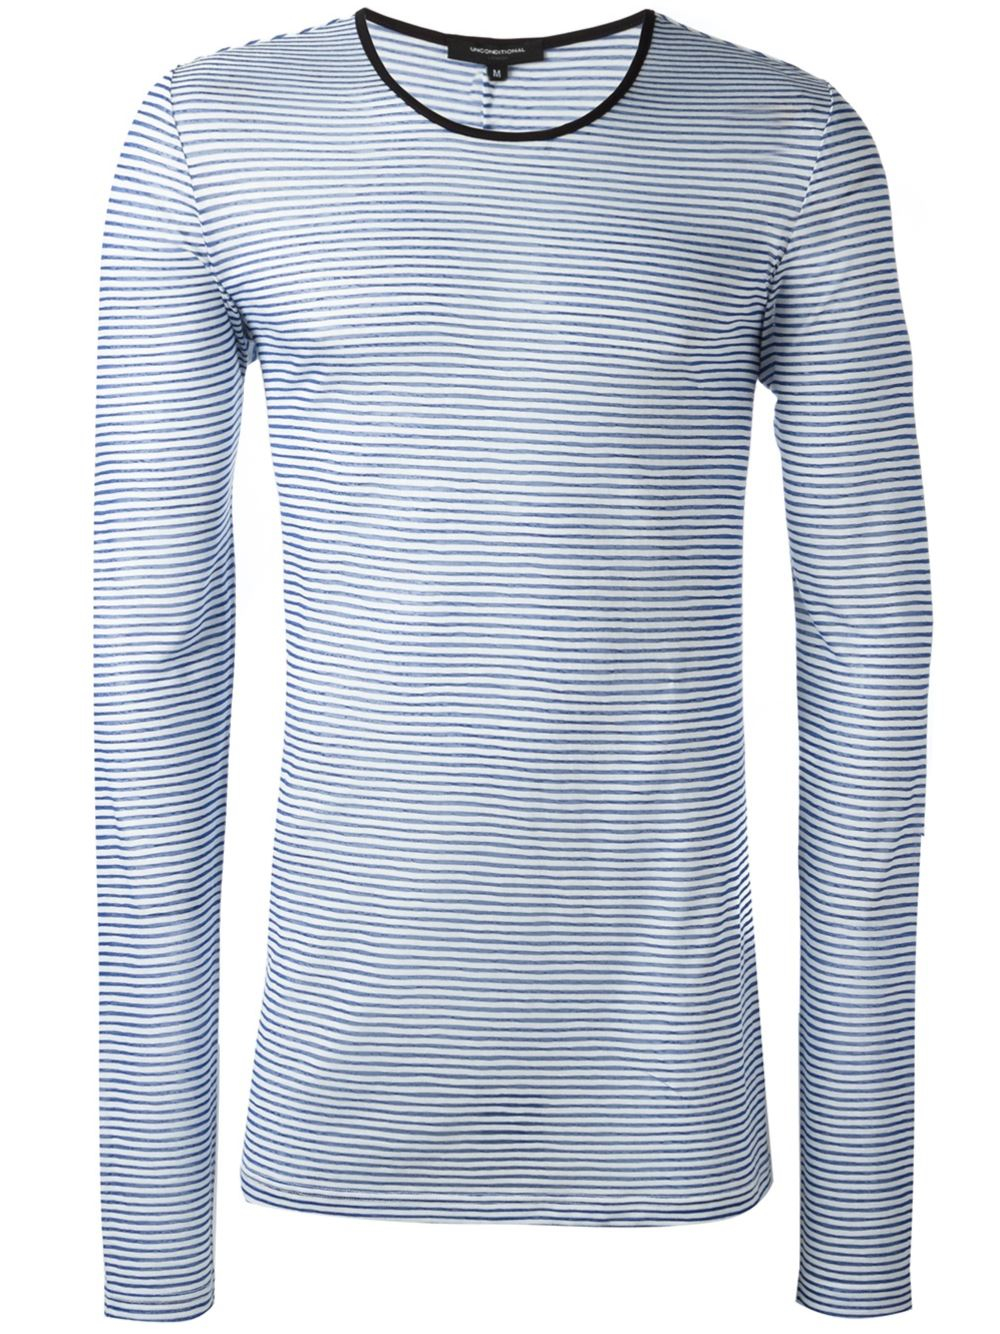 Lyst unconditional striped long sleeved t shirt in blue for Blue and white striped long sleeve t shirt